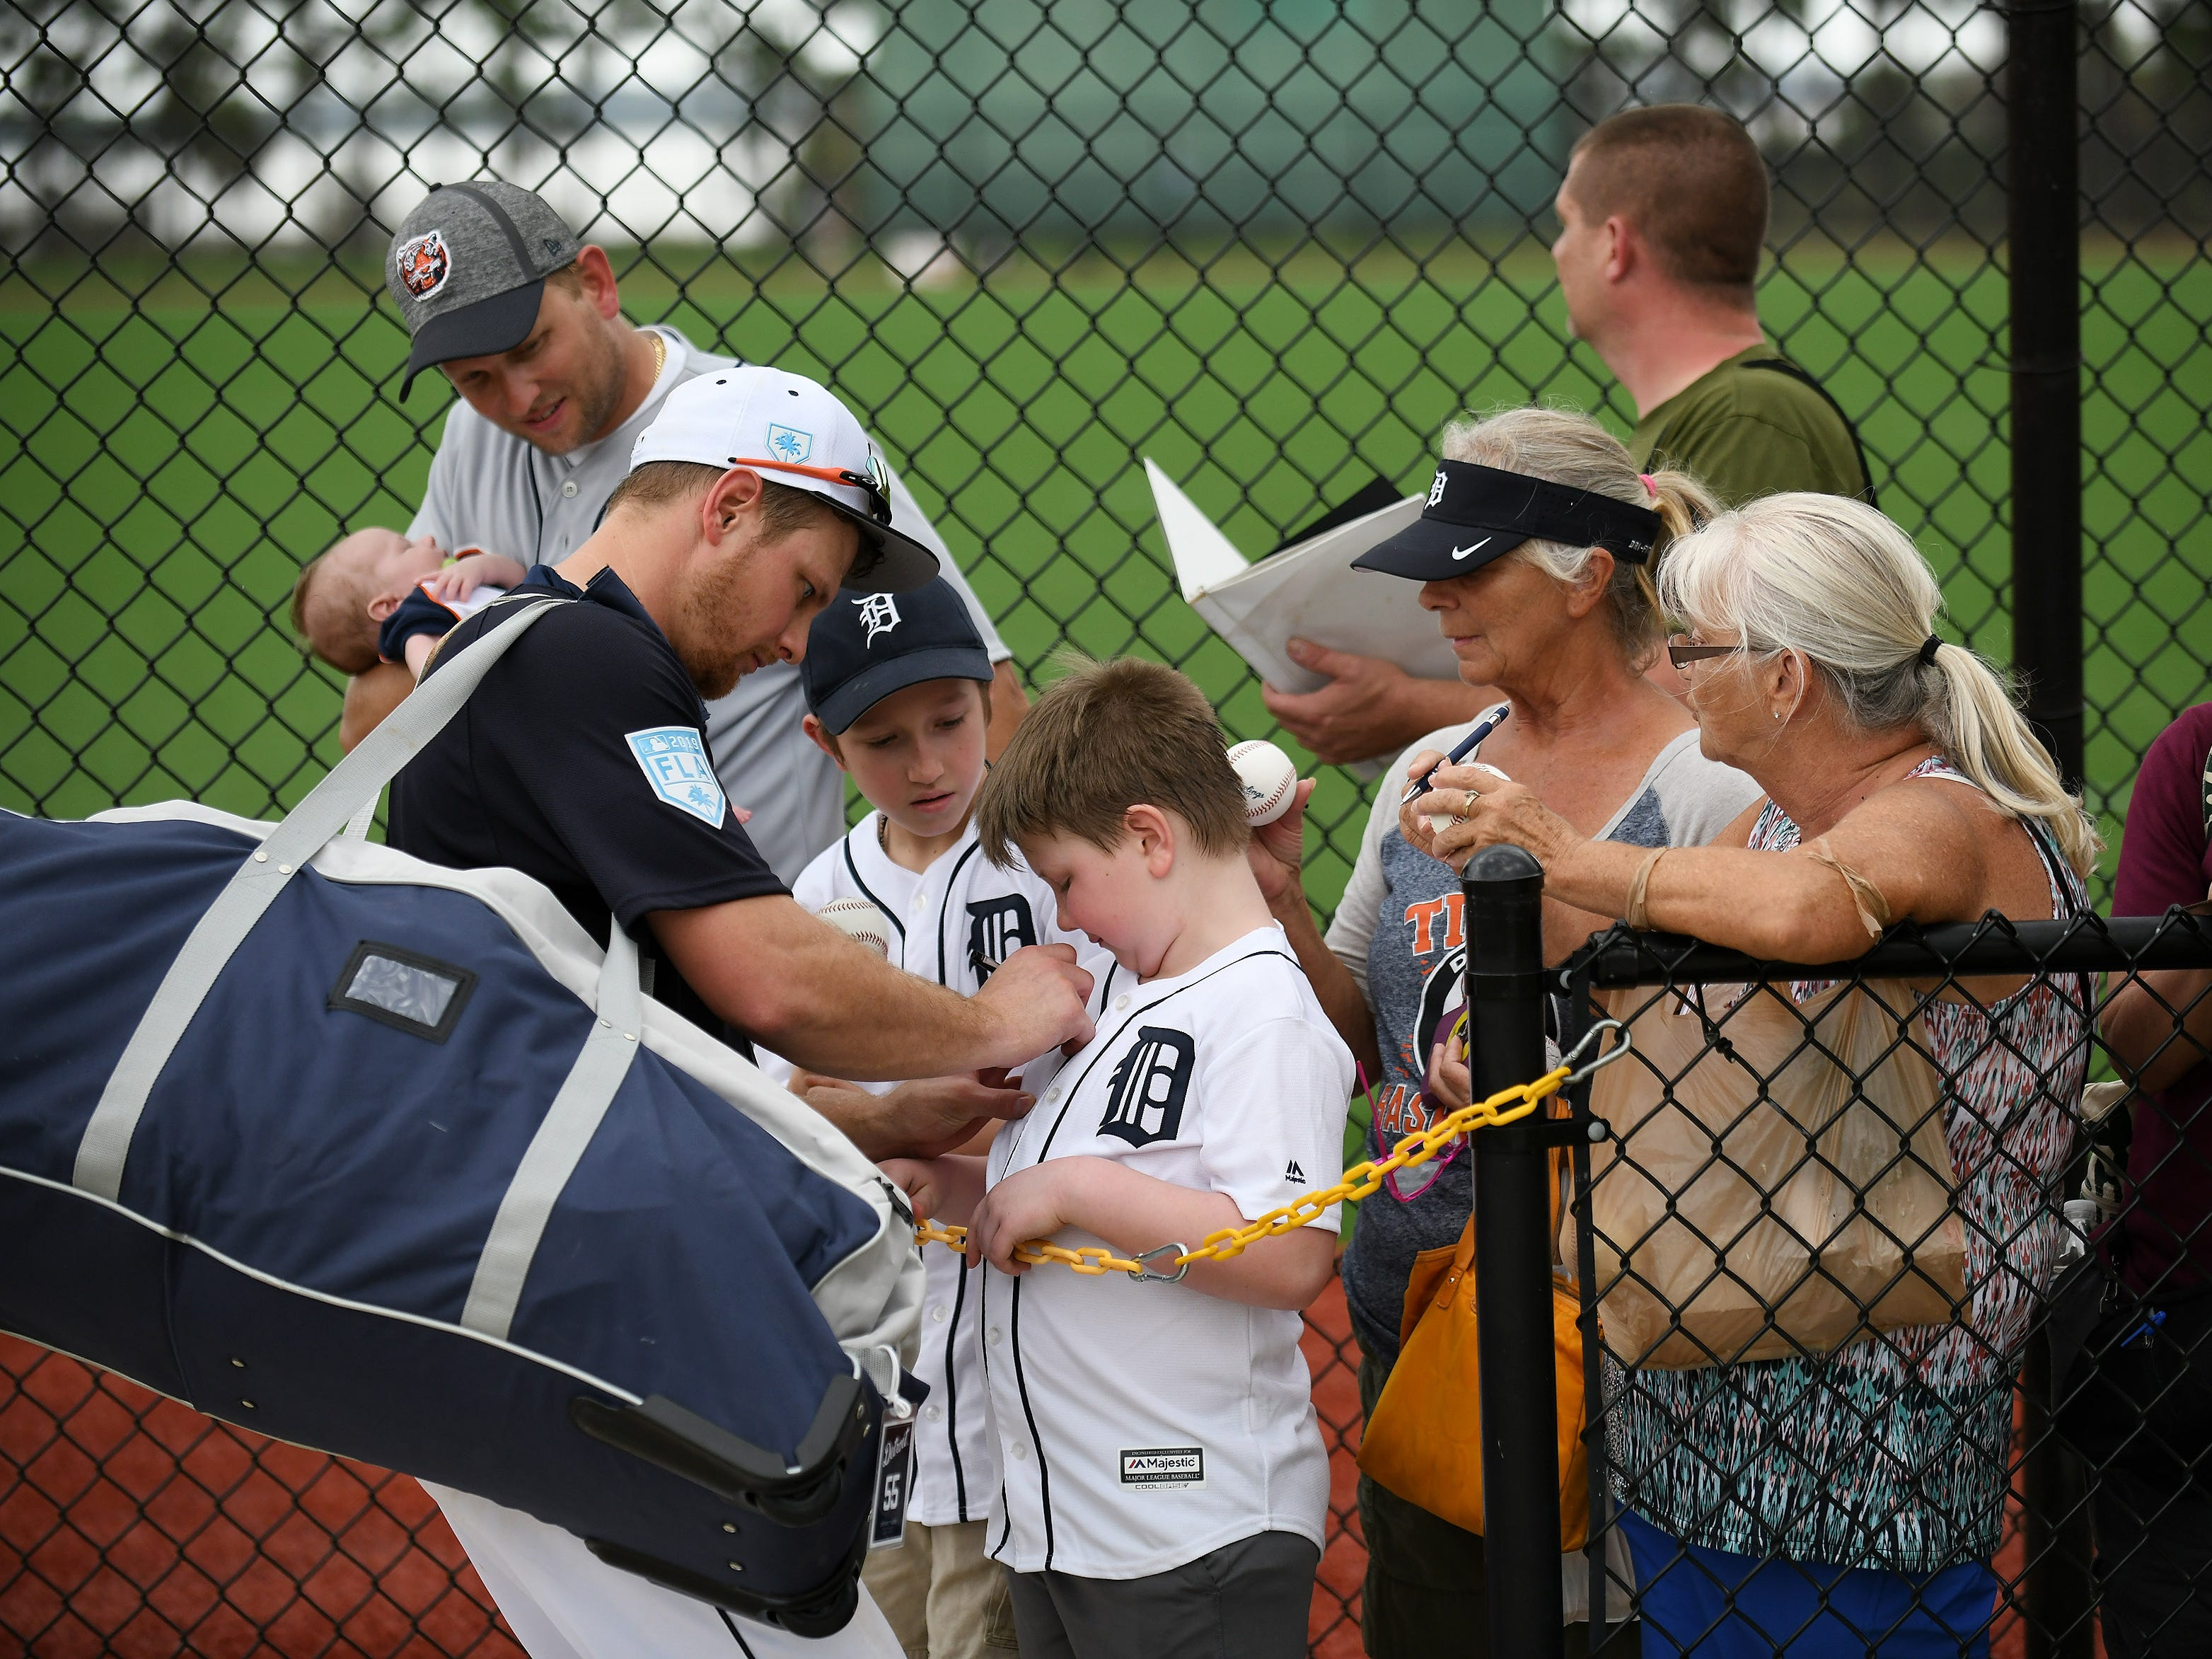 Tigers catcher John Hicks signs the jersey of Landon Simunic, 8, of Shelby Township after the workout.